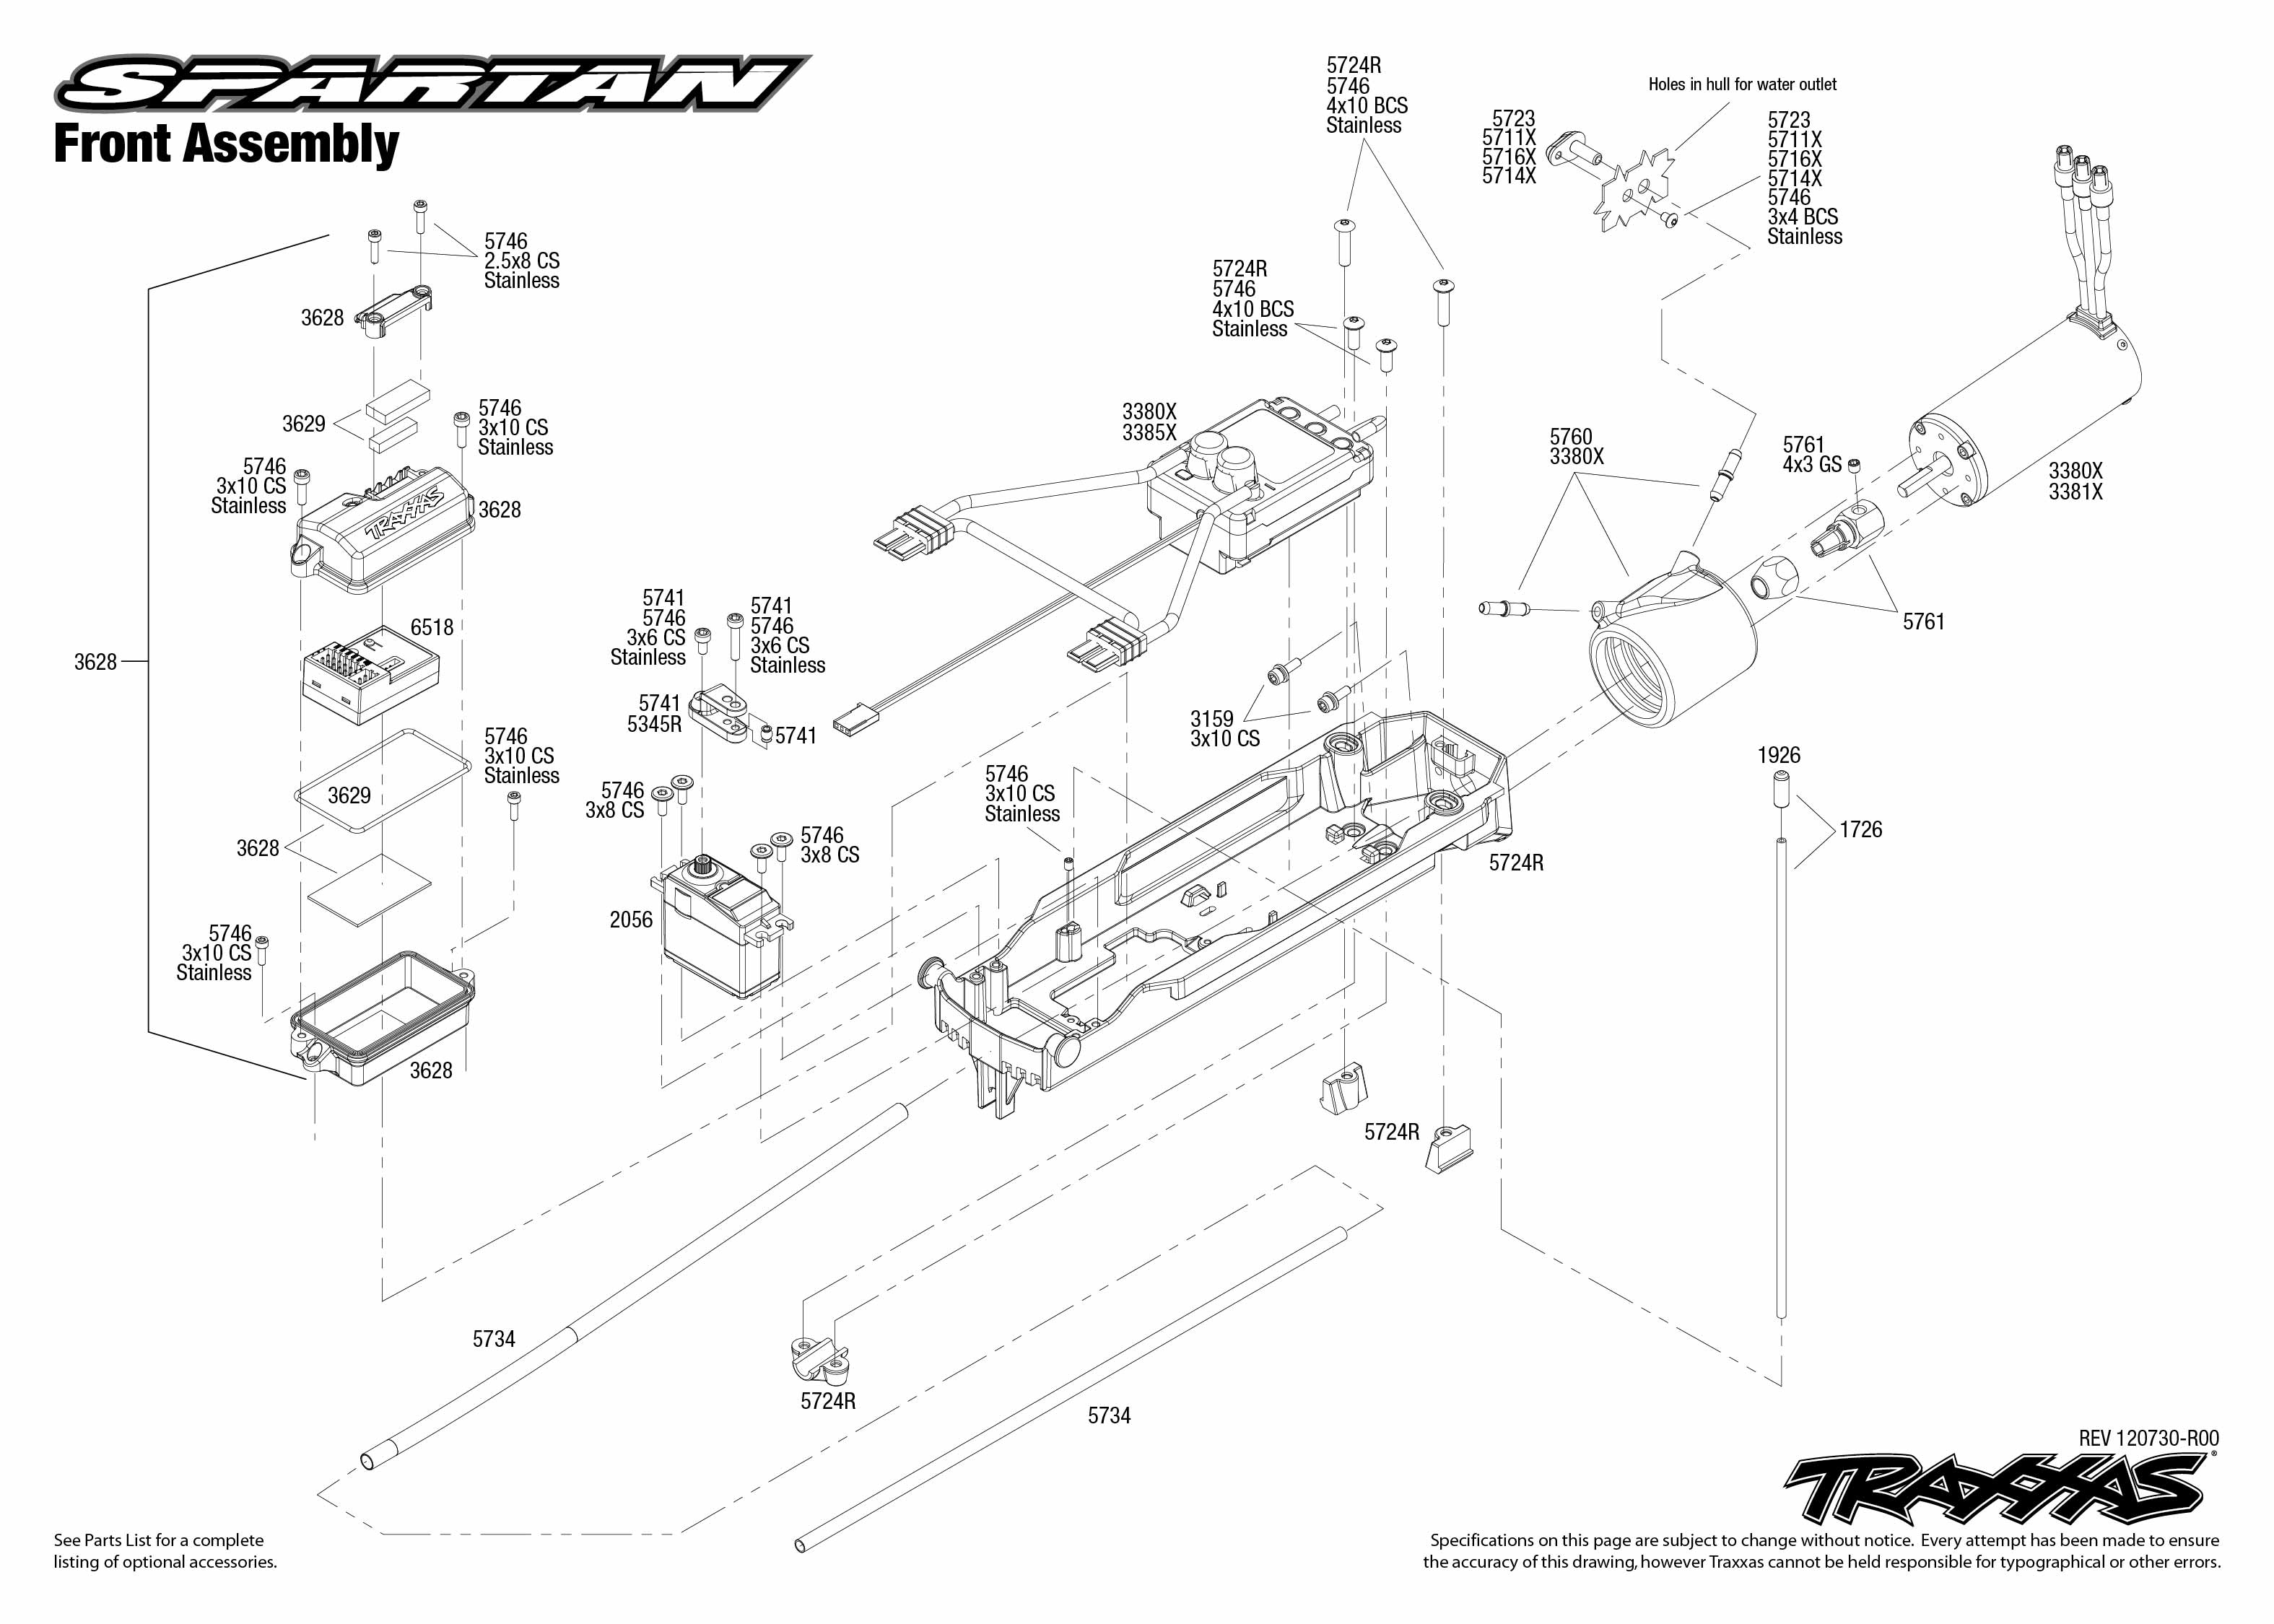 Traxxas Spartan Front Assembly